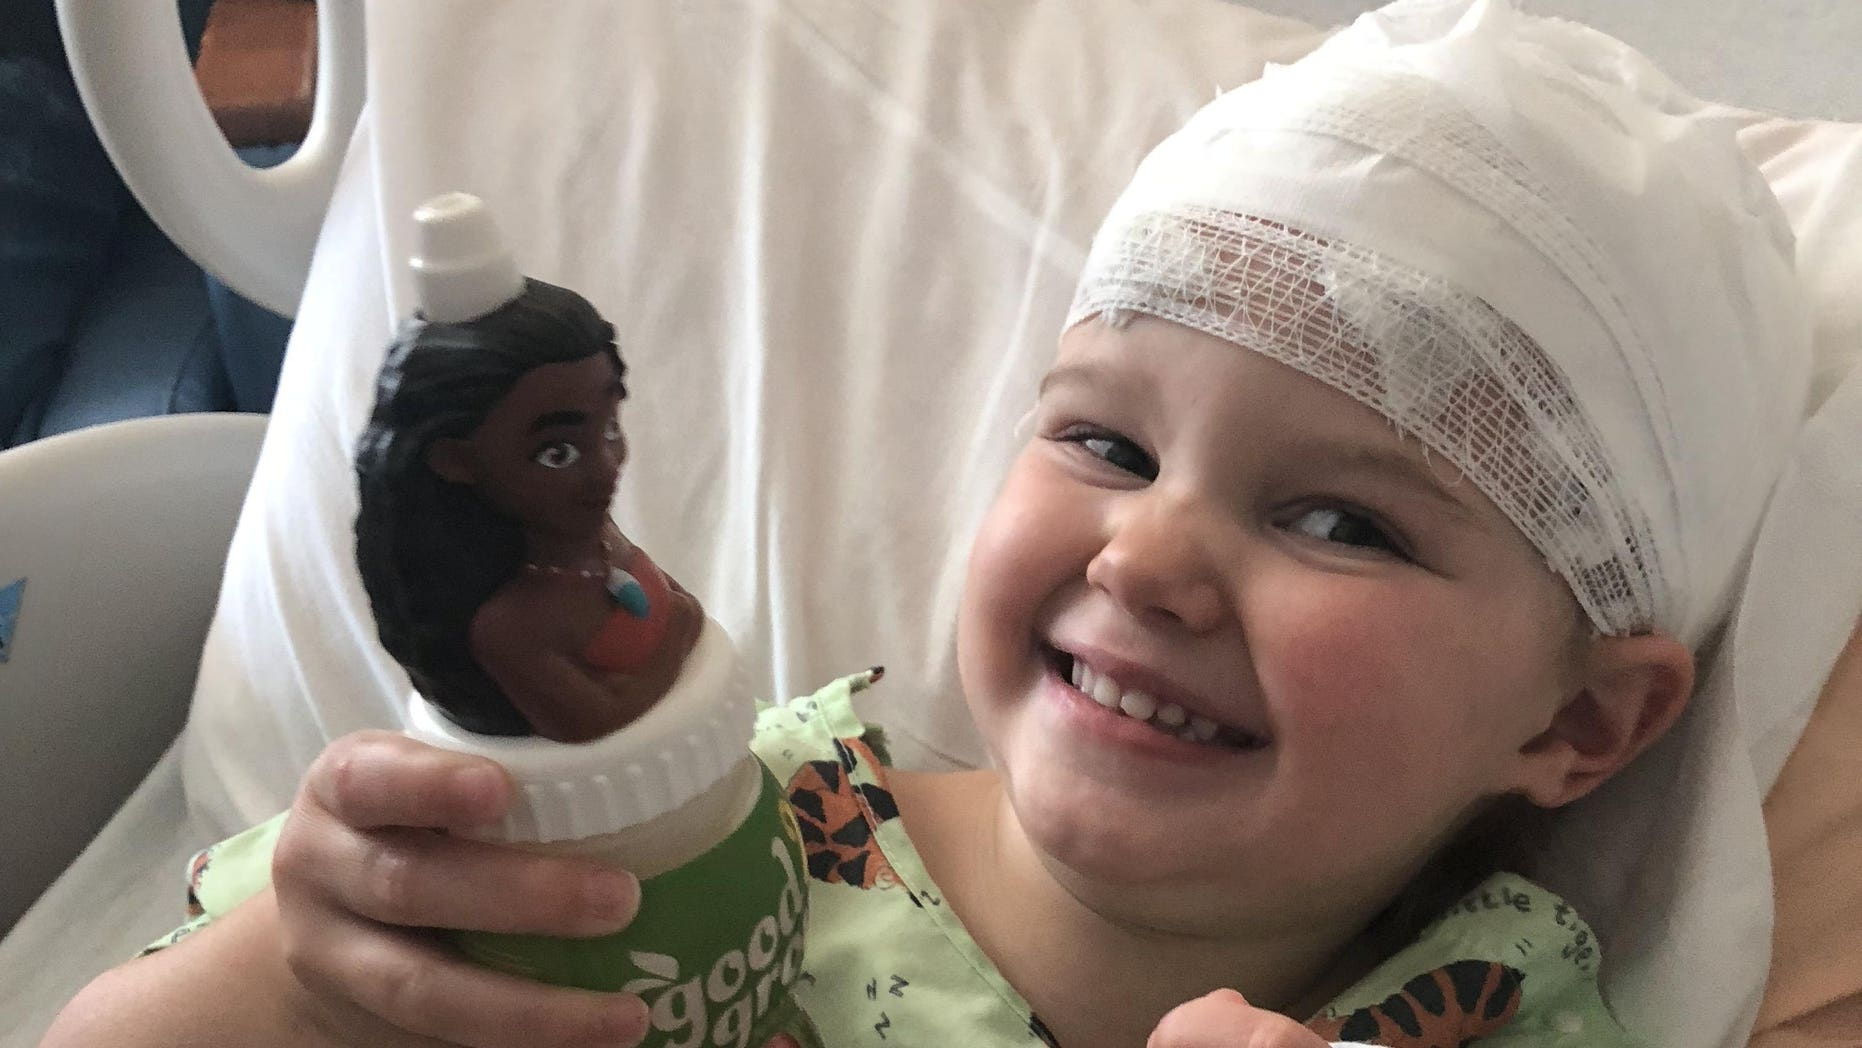 When Grace lost the ability to walk and her speech deteriorated from whole paragraphs to single syllables, neurologists suspected she was suffering from autoimmune encephalitis.